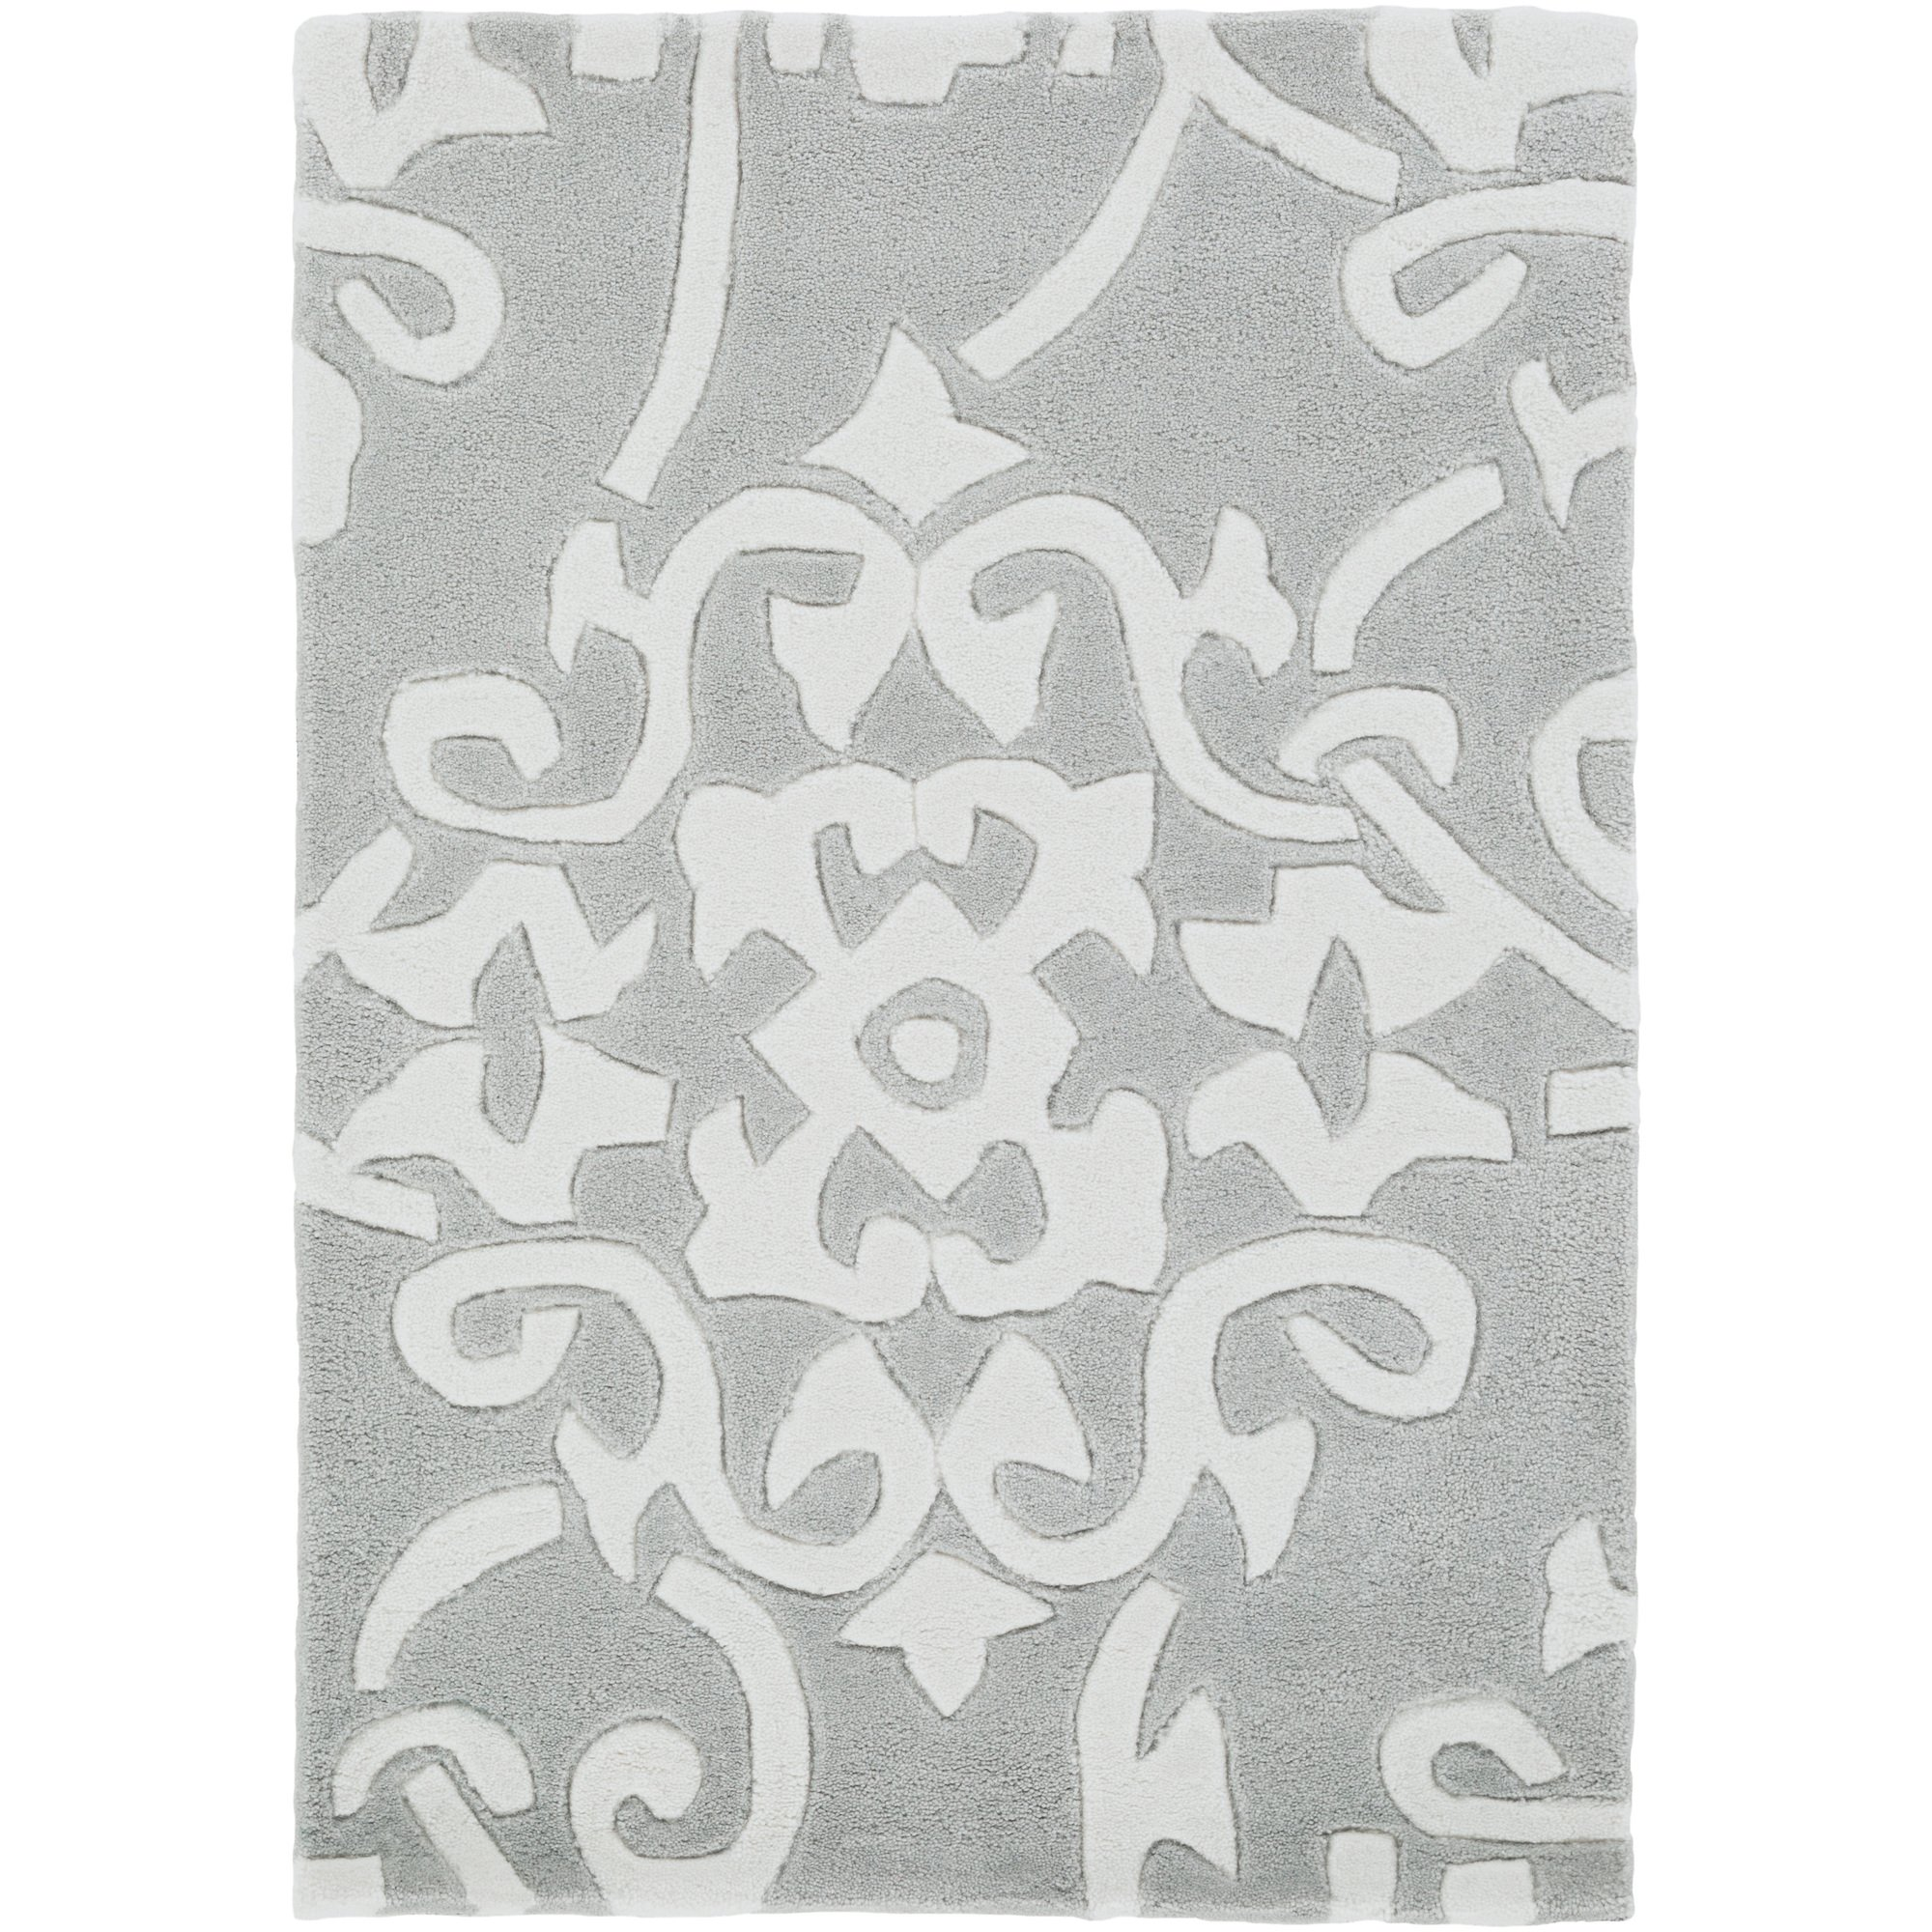 Surya Cosmopolitan COS-8828 Classic Hand Tufted 100% Polyester Robin's Egg Blue 2'6'' x 8' Paisleys and Damasks Runner by Surya